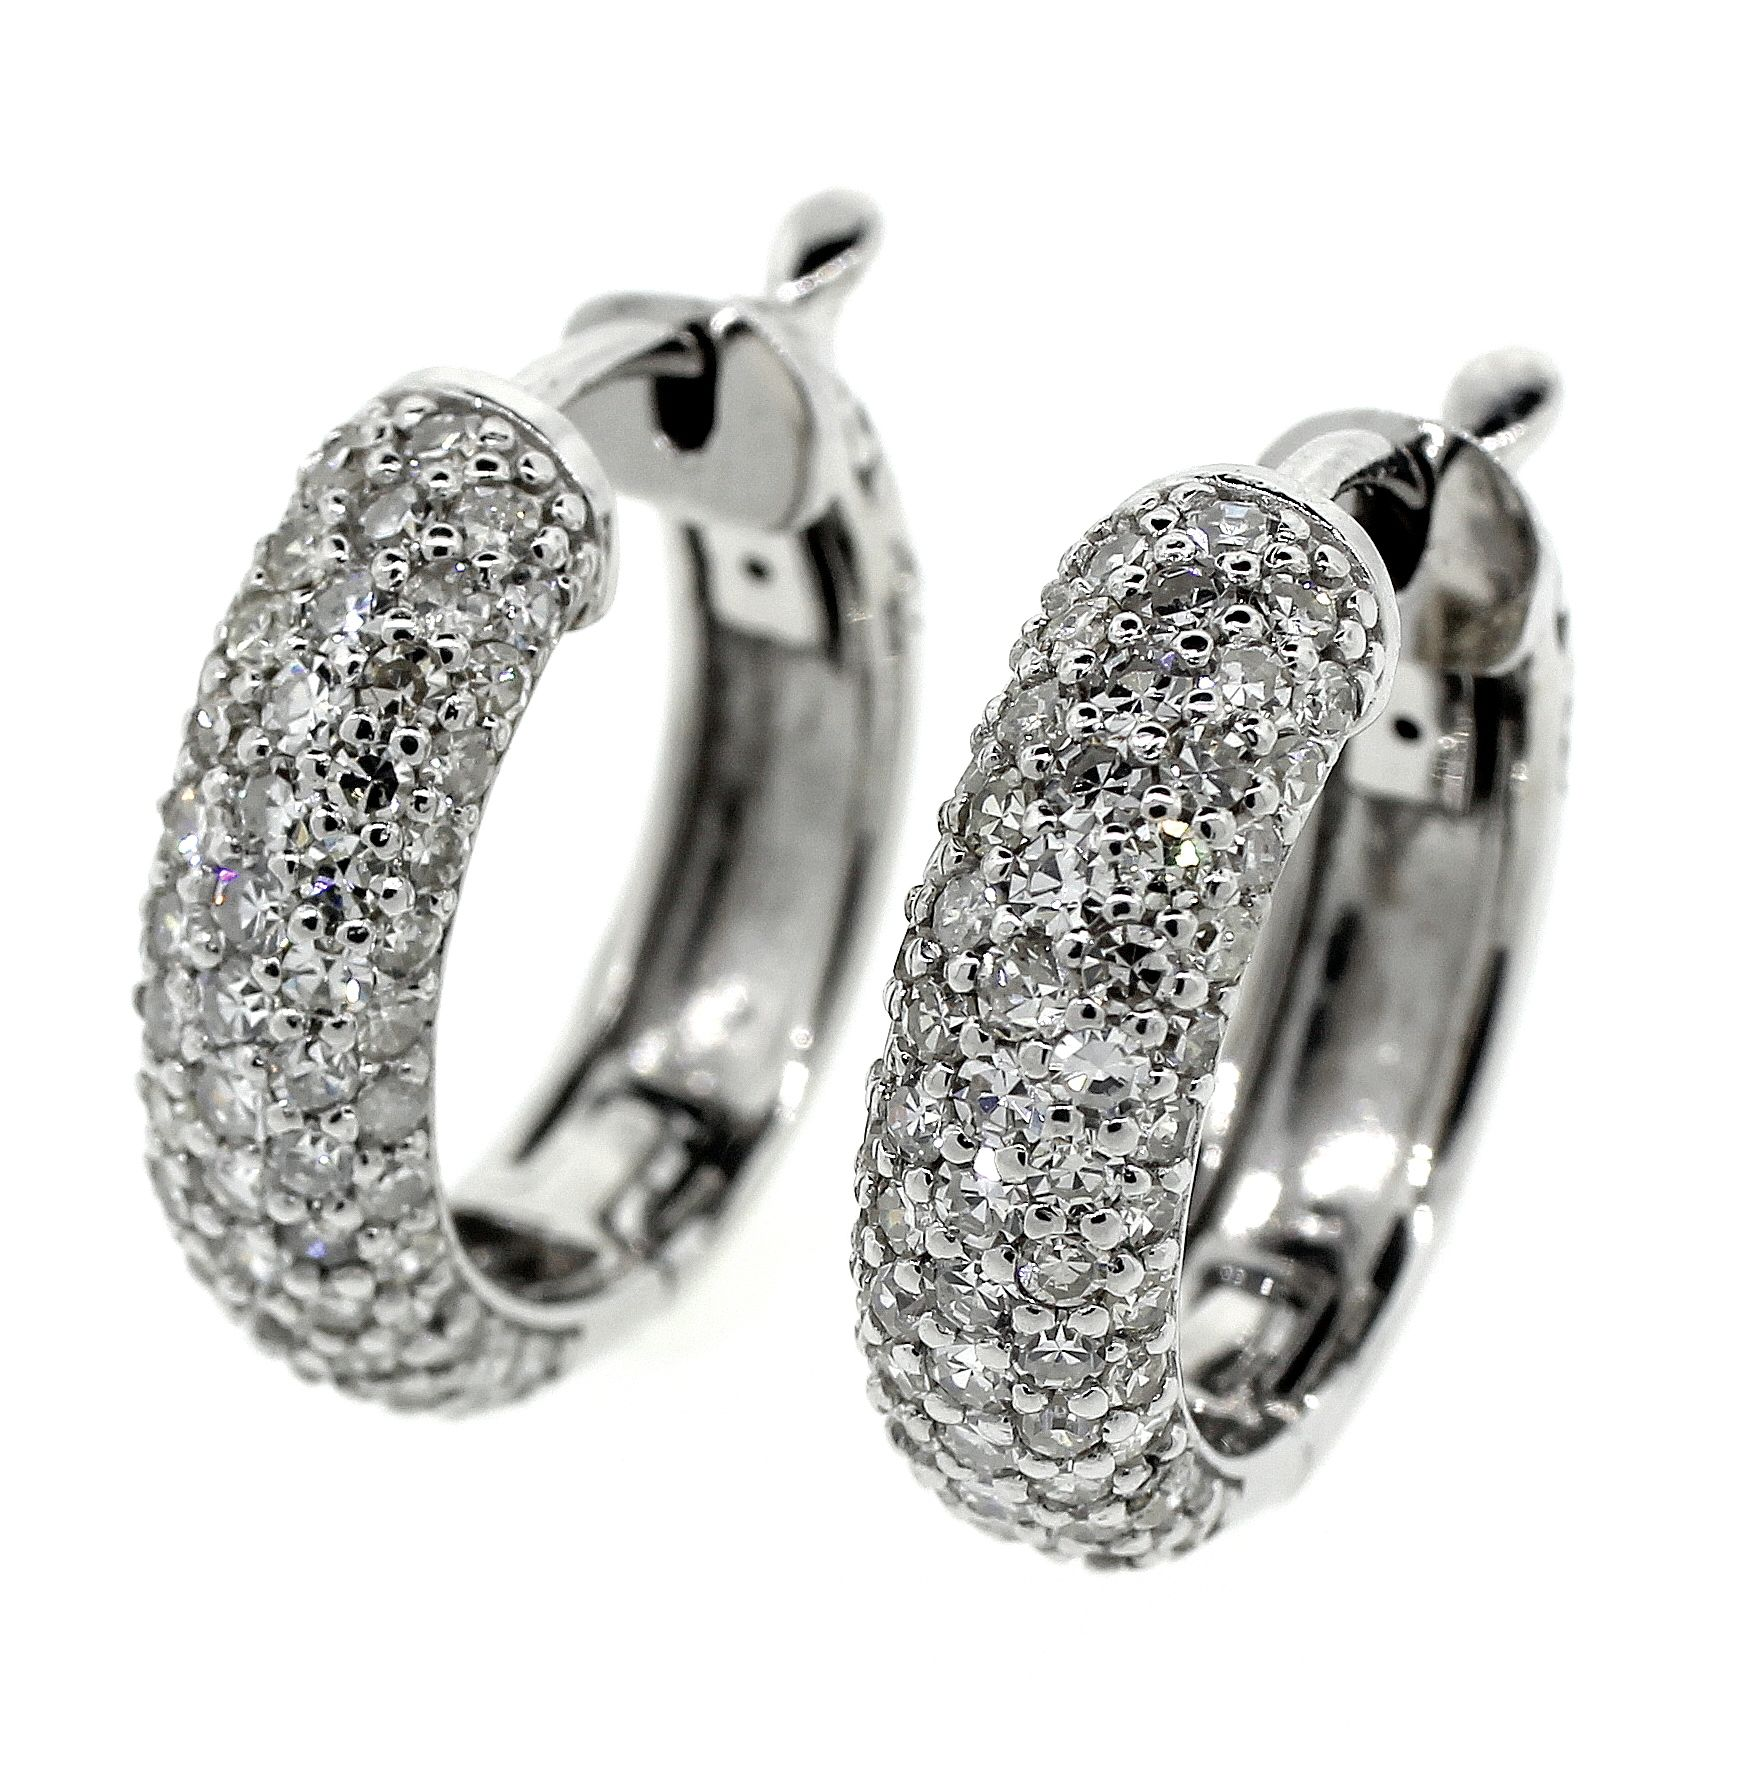 Diamond pave huggie earrings Earrings Pinterest